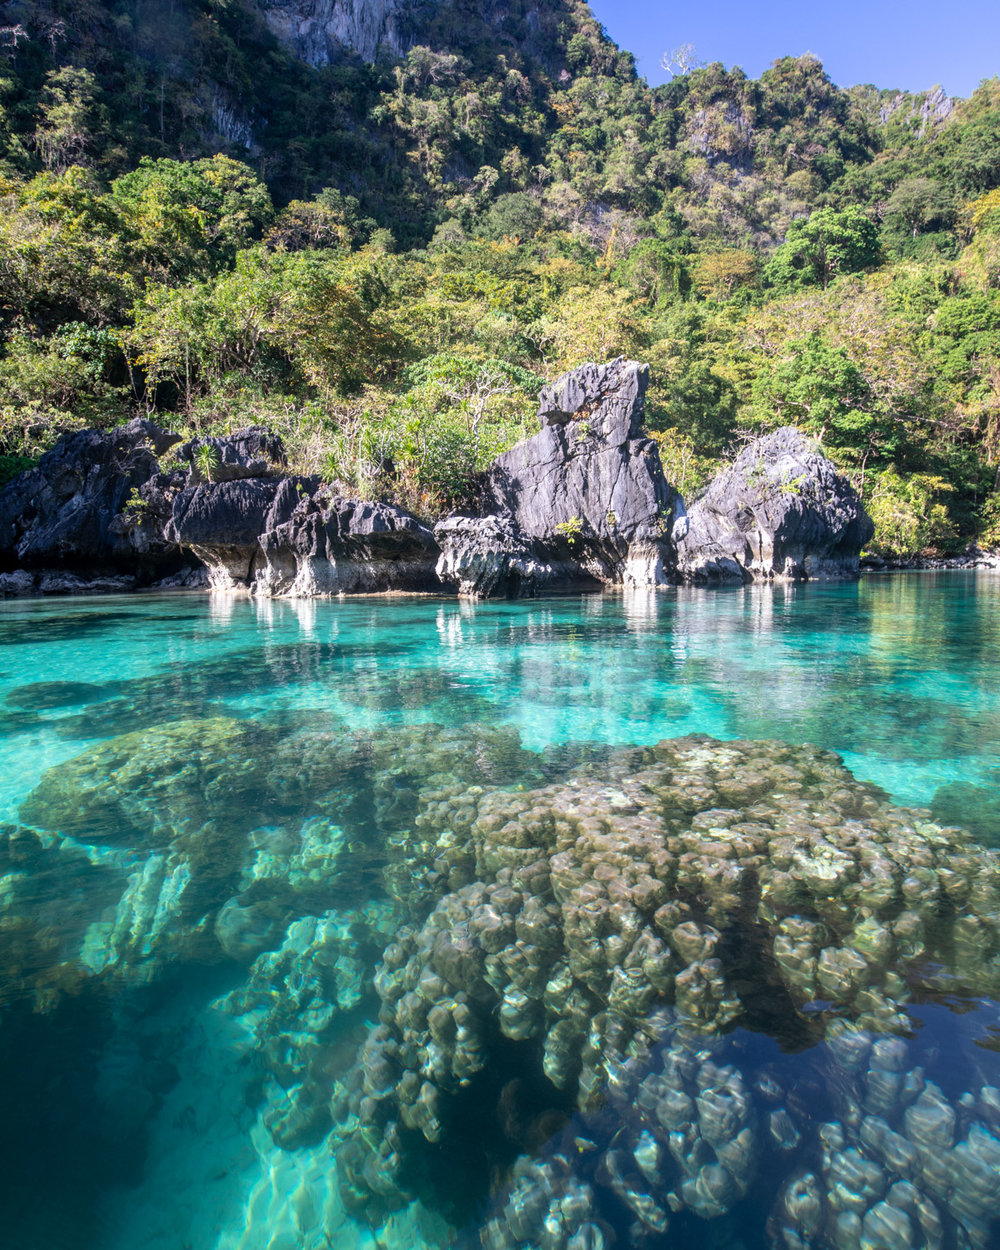 The crystal clear water and coral in the Big Lagoon